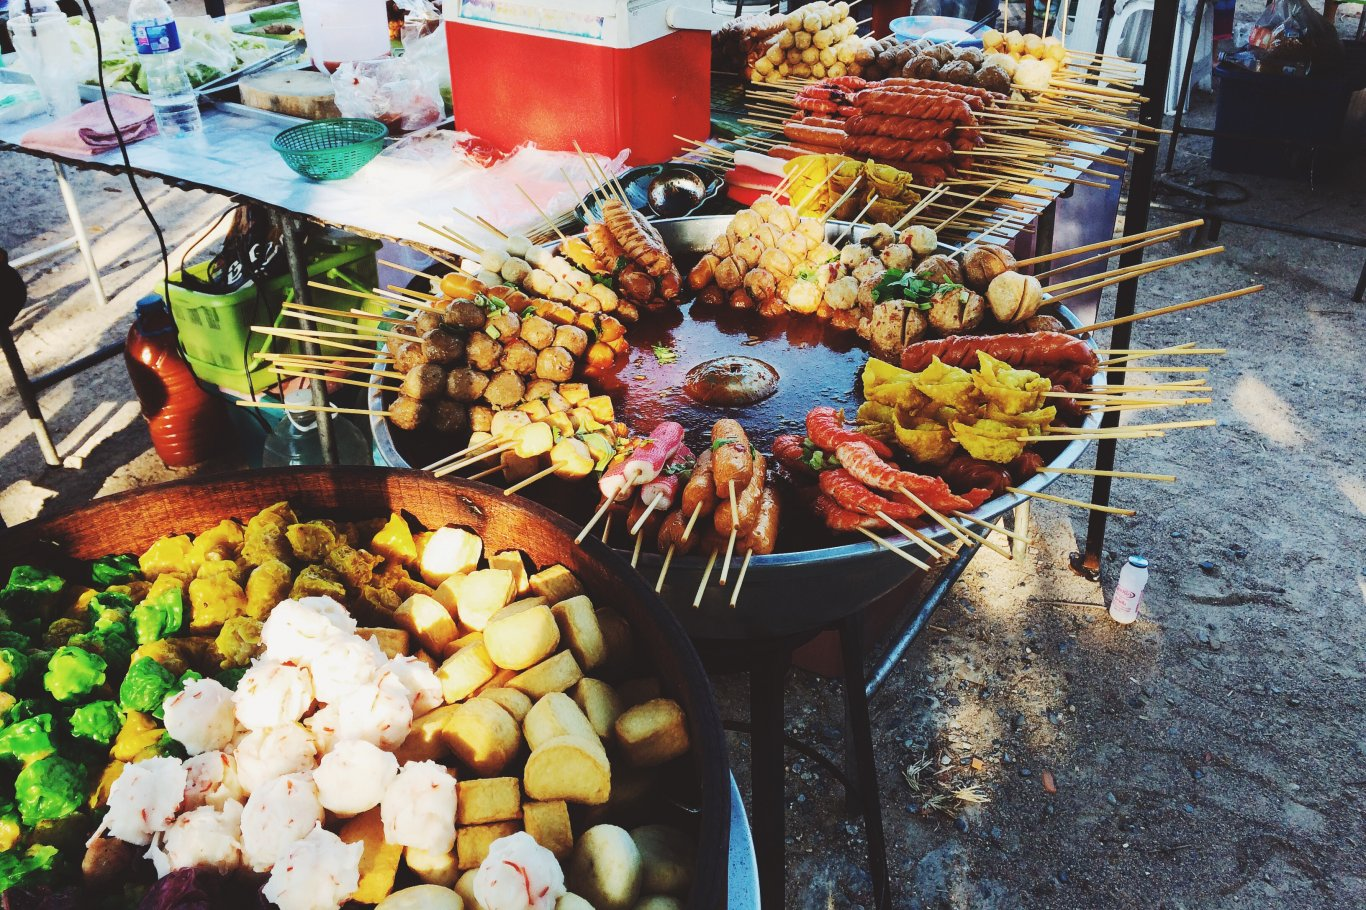 A photo of a stall with different foods